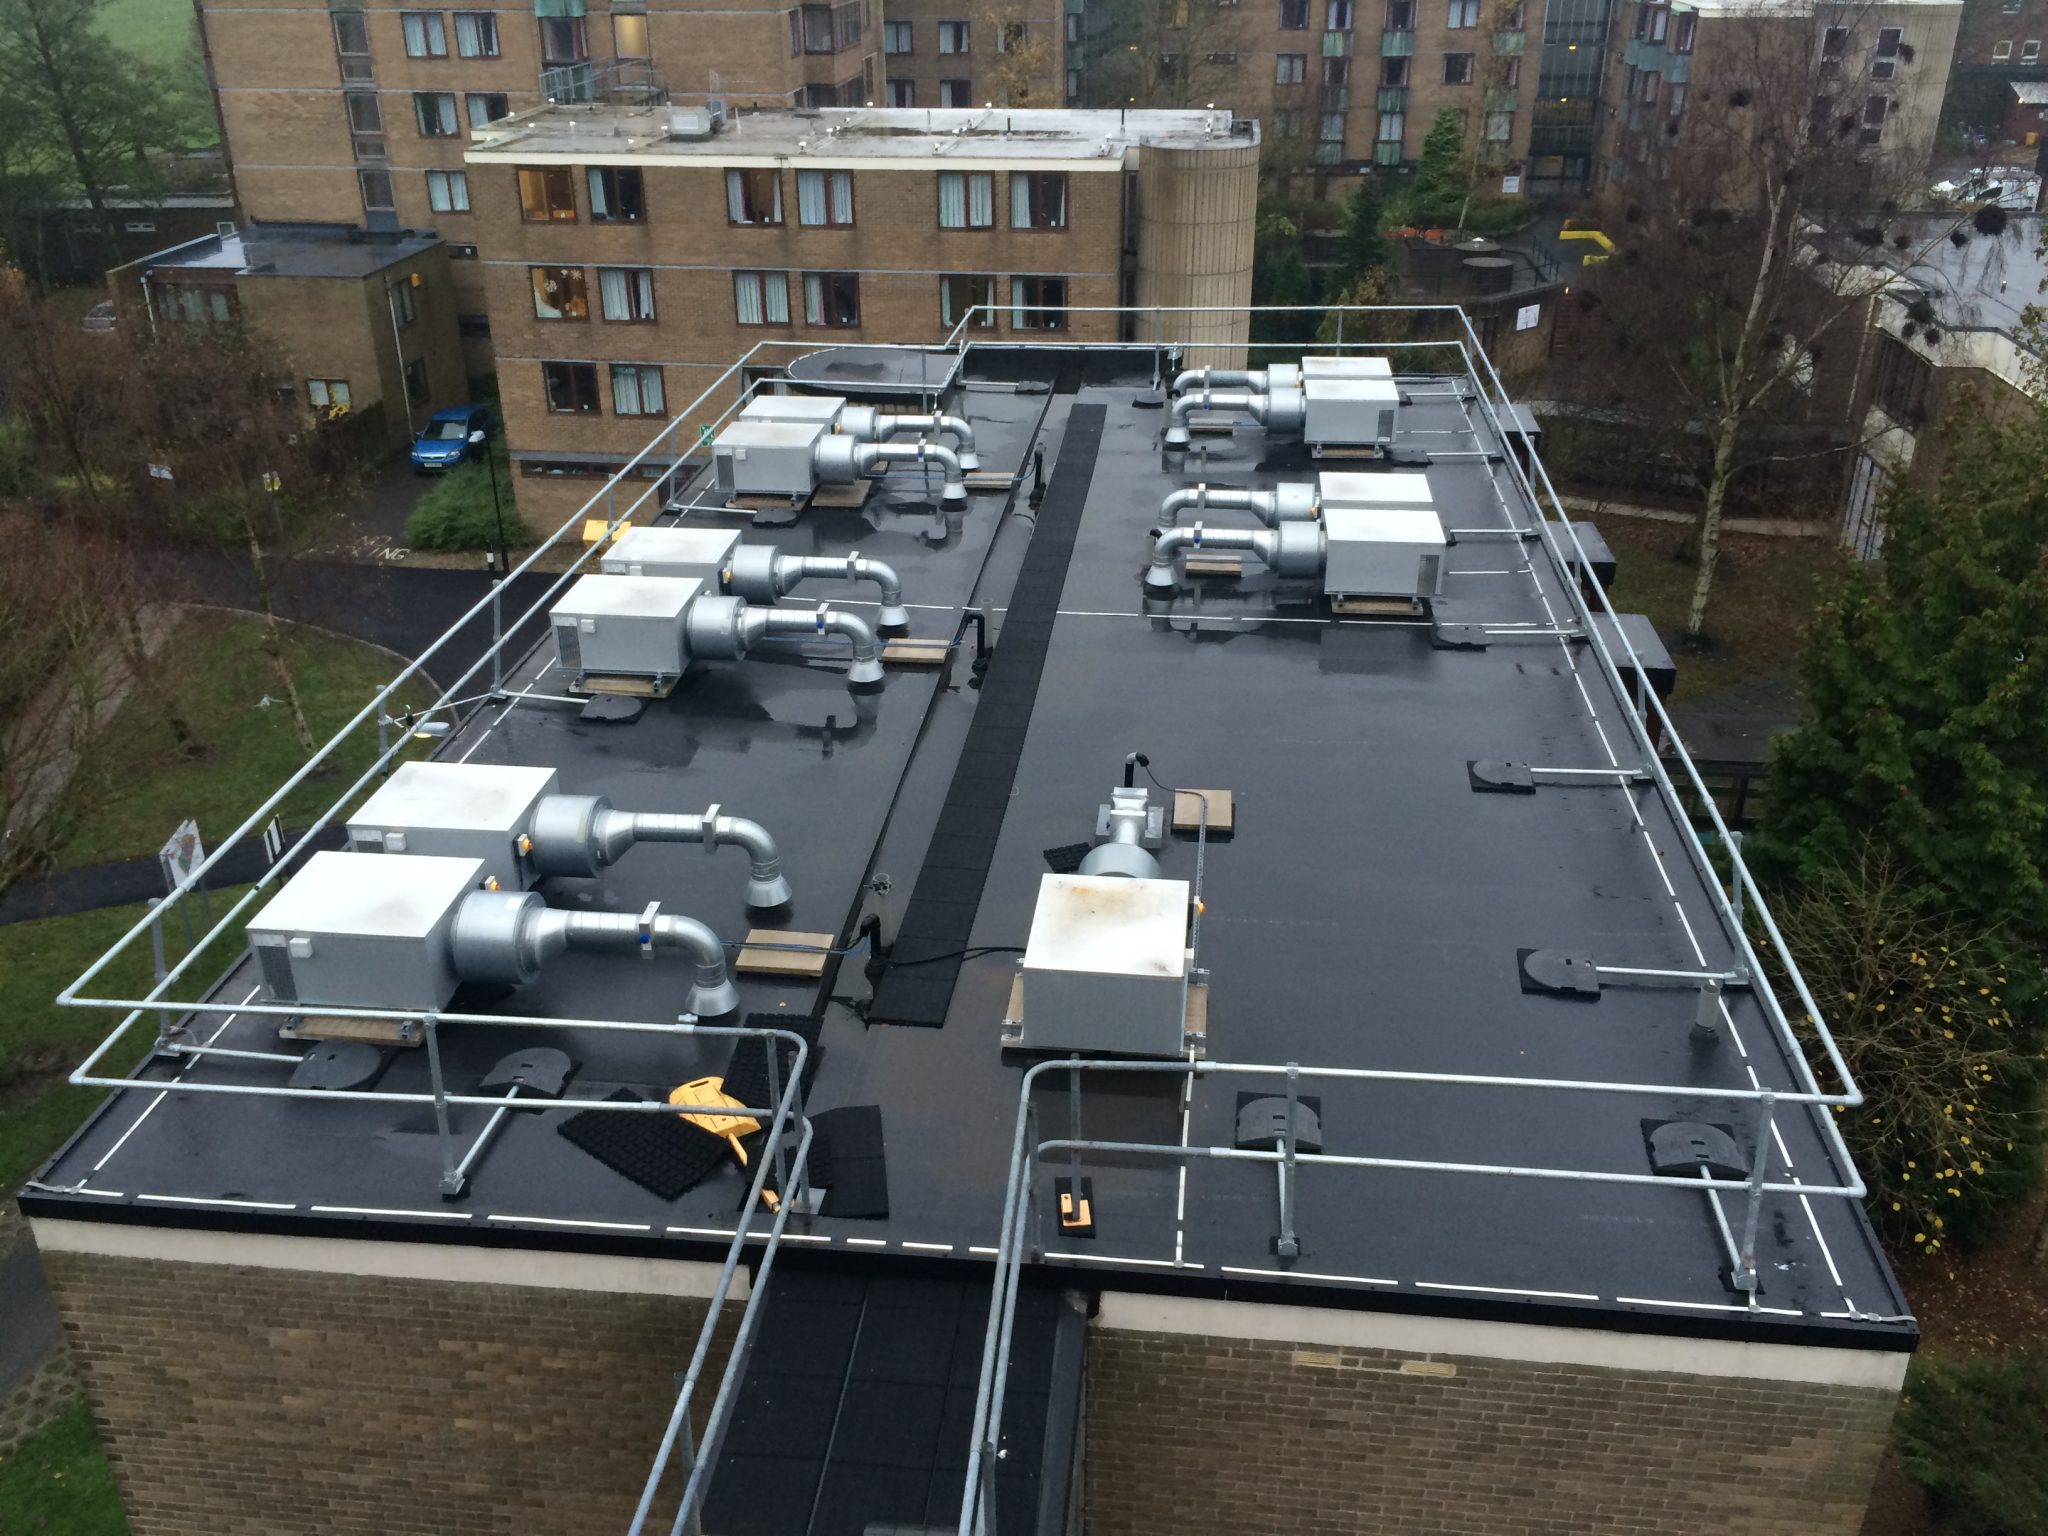 Newcastle University Roof